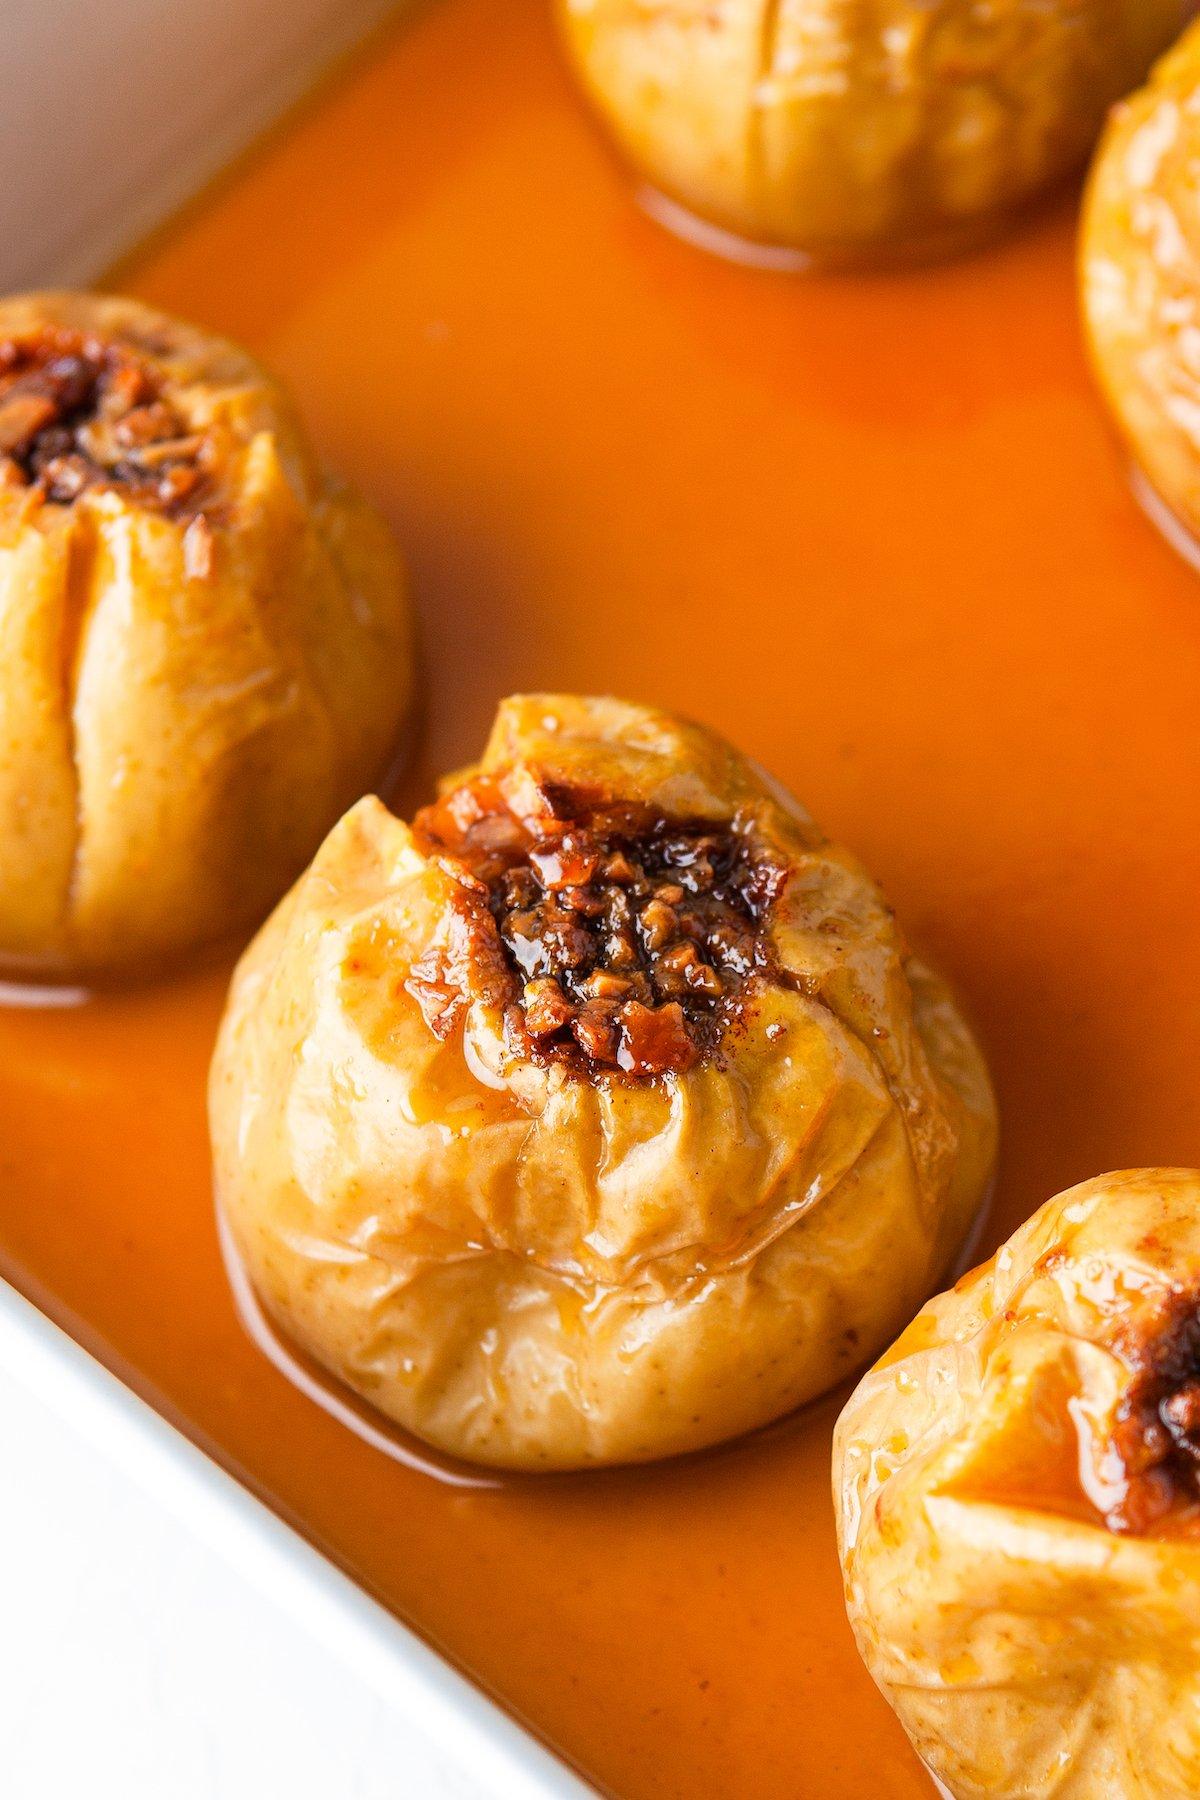 Golden apples stuffed with chopped nuts, brown sugar, and cinnamon.